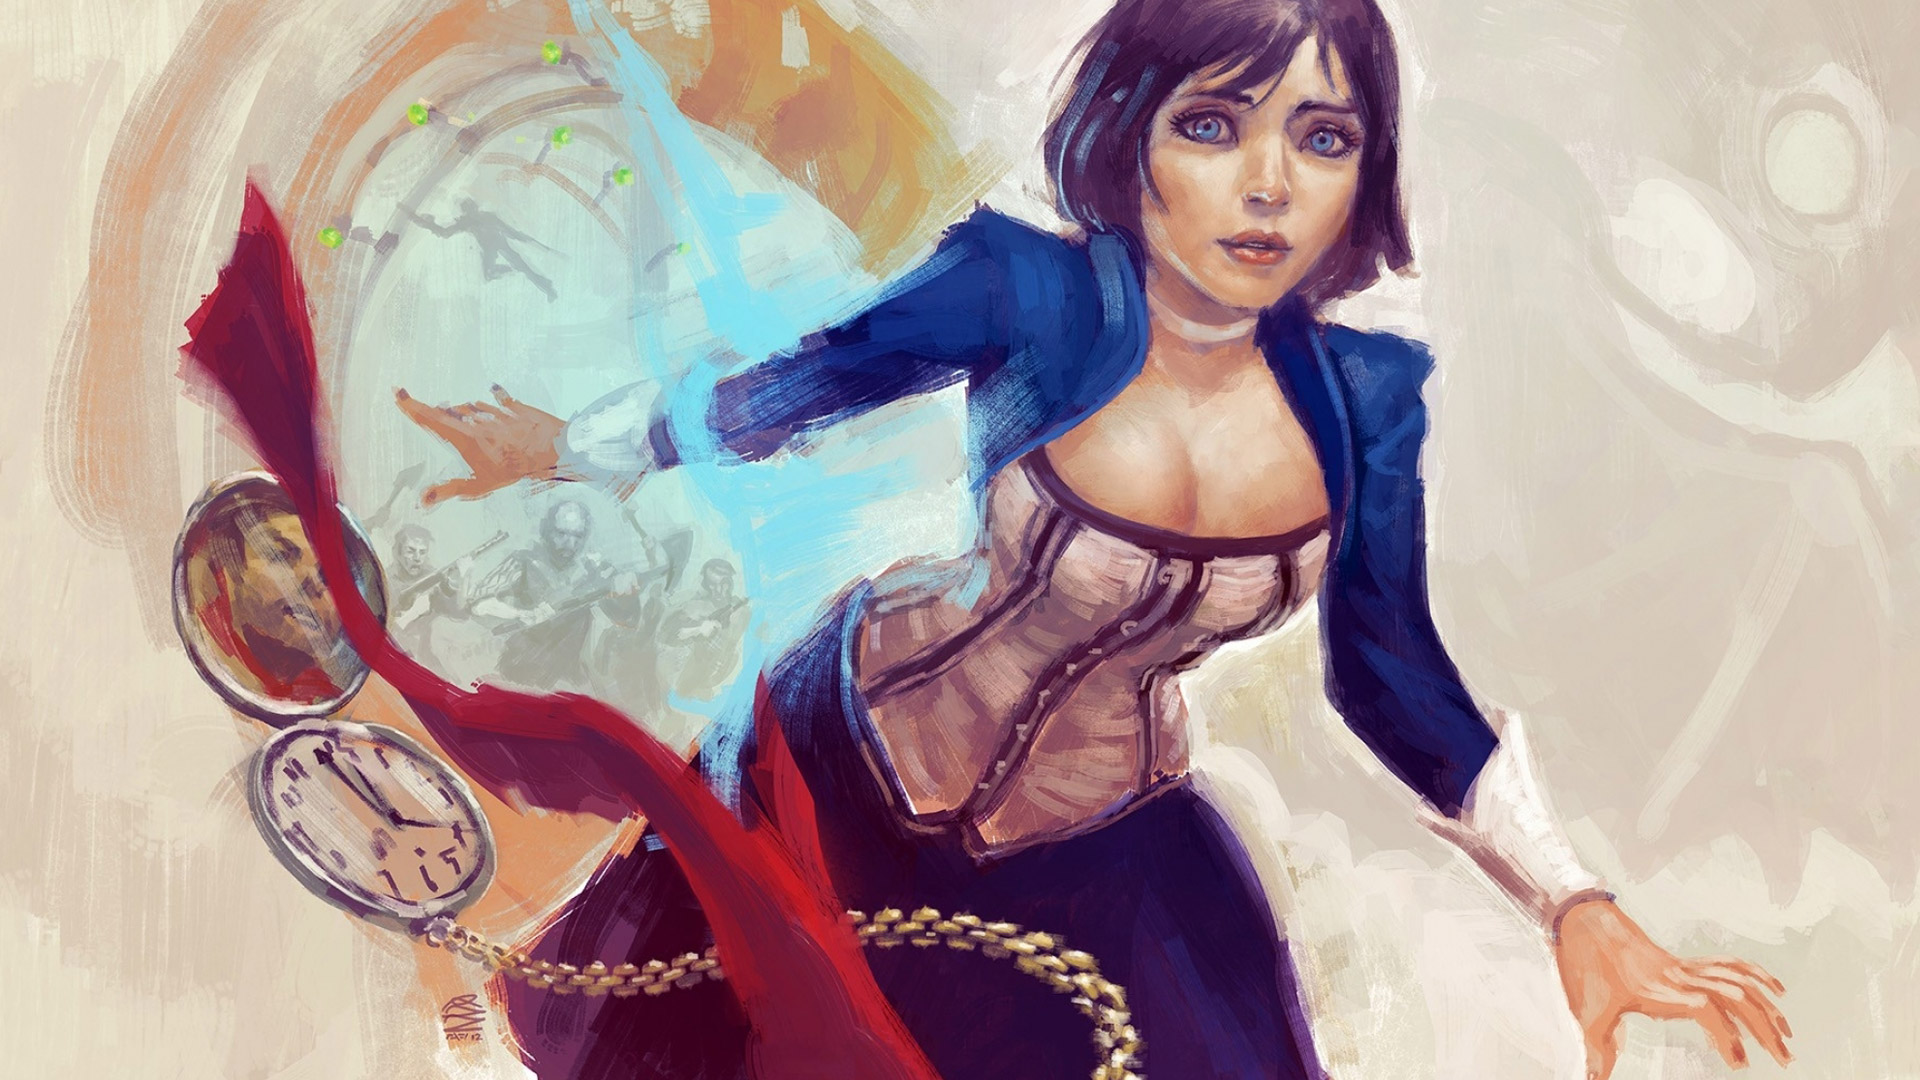 Bioshock Infinite wallpaper 4